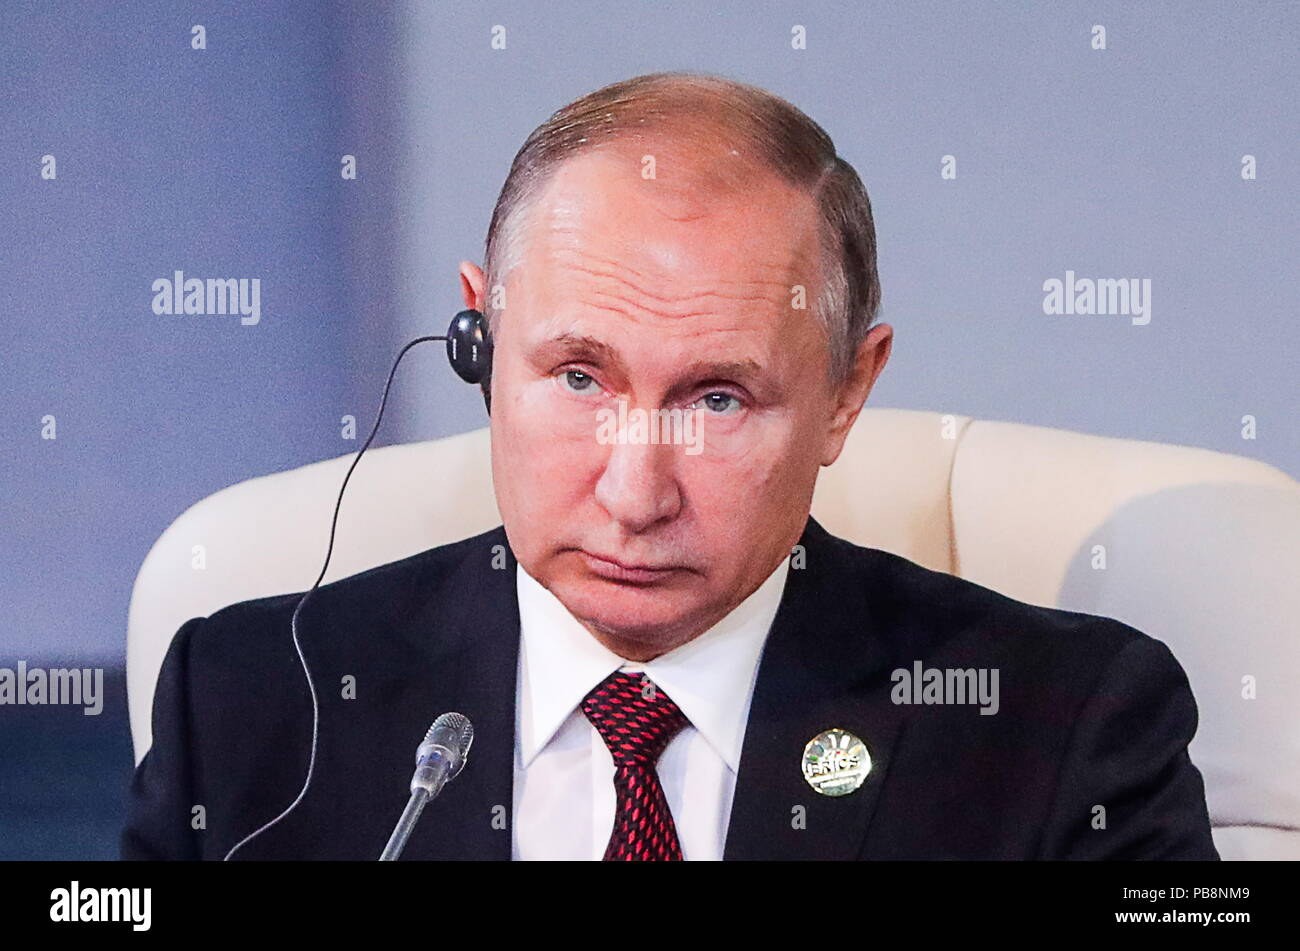 Vladimir Putin is coming to South Africa for the 2018 BRICS Summit